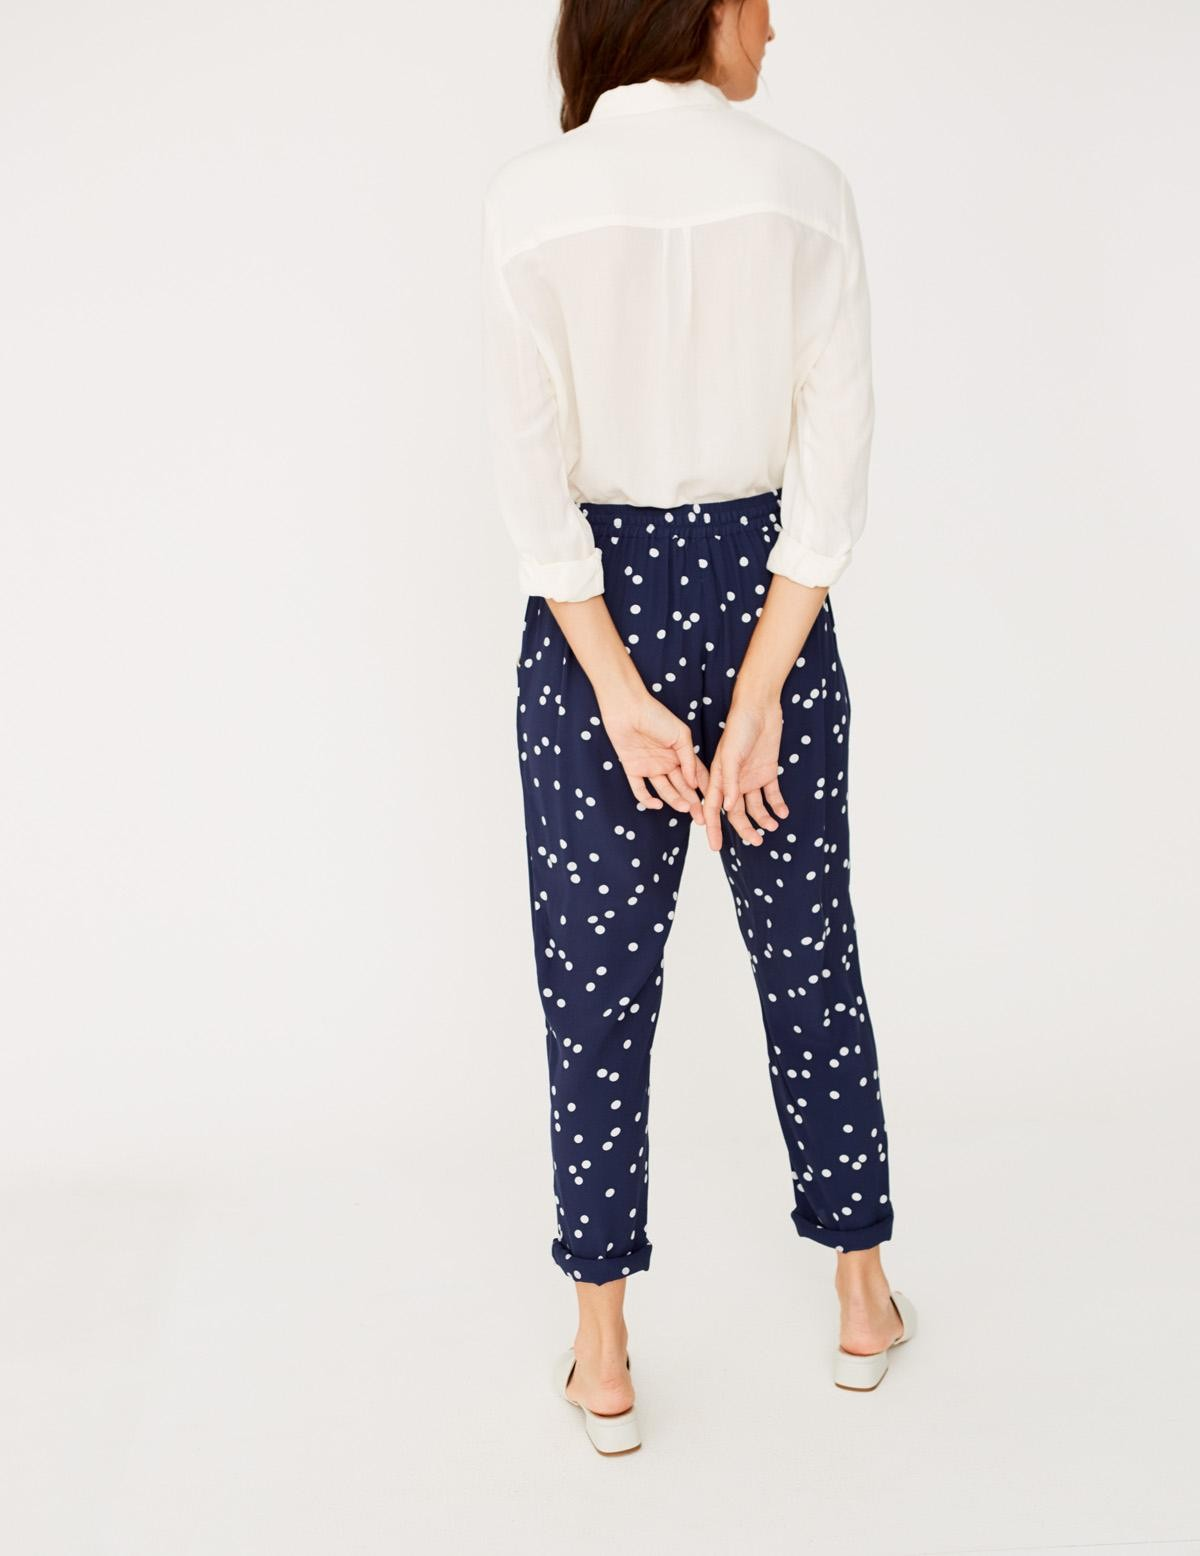 Flowing print trousers - Item1